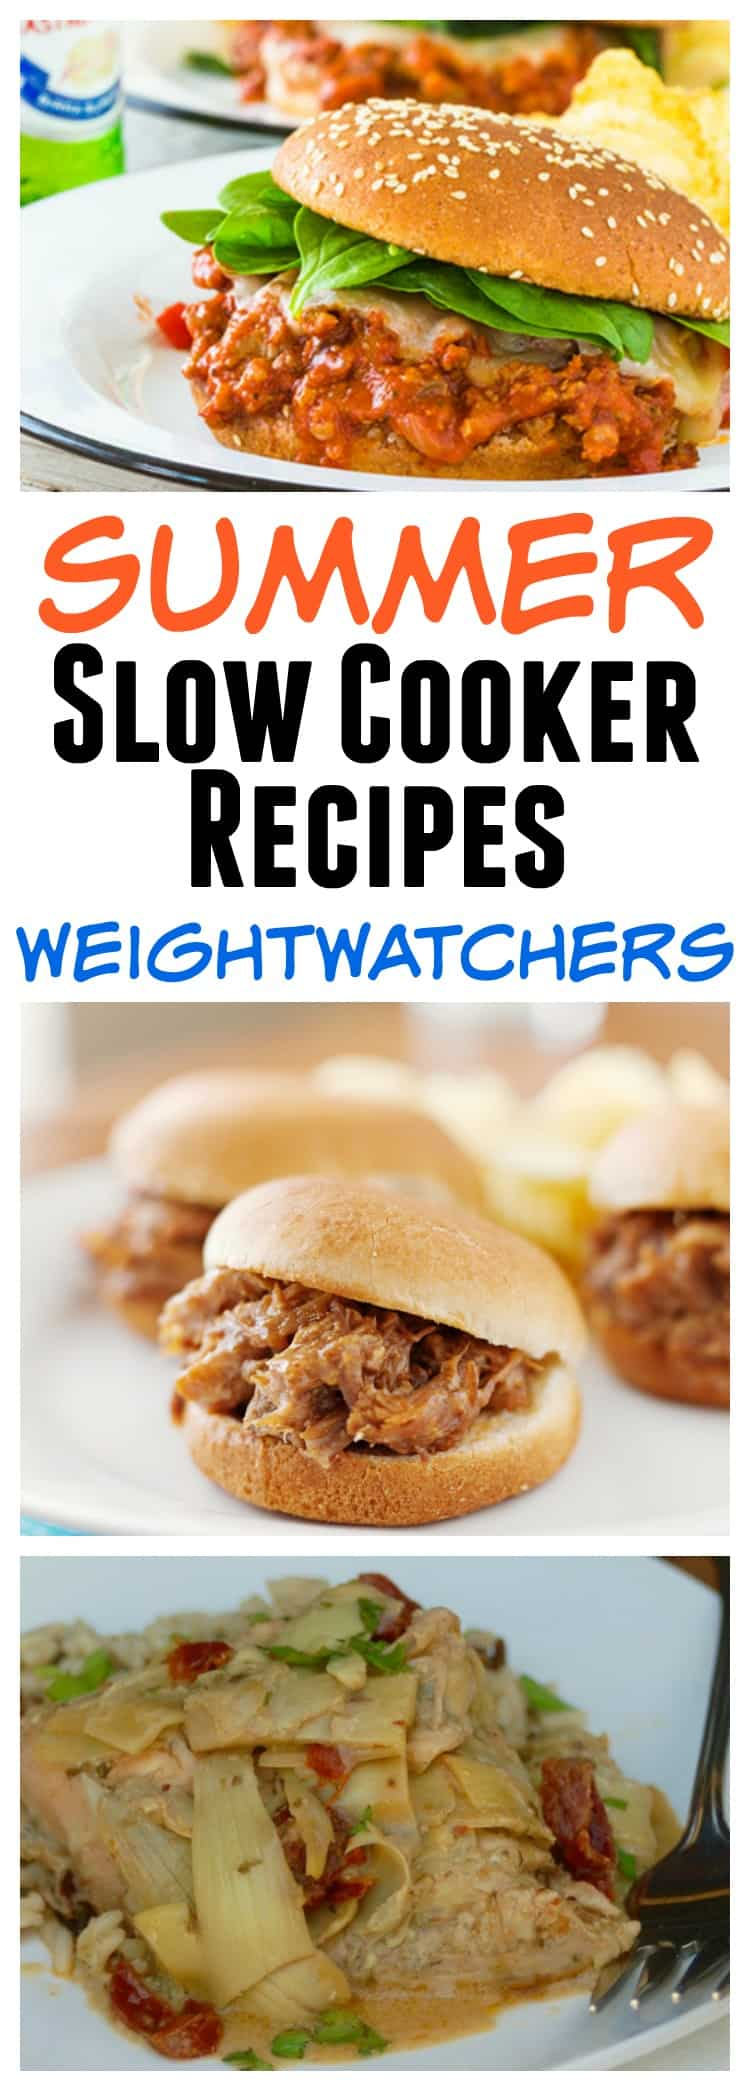 Weight Watchers Summer Slow Cooker Recipes RoundUp #easyhealthyrecipes #healthyslowcookerrecipes #weightwatcherscrockpotrecipes #simplenourishedliving #wwfreestylerecipes